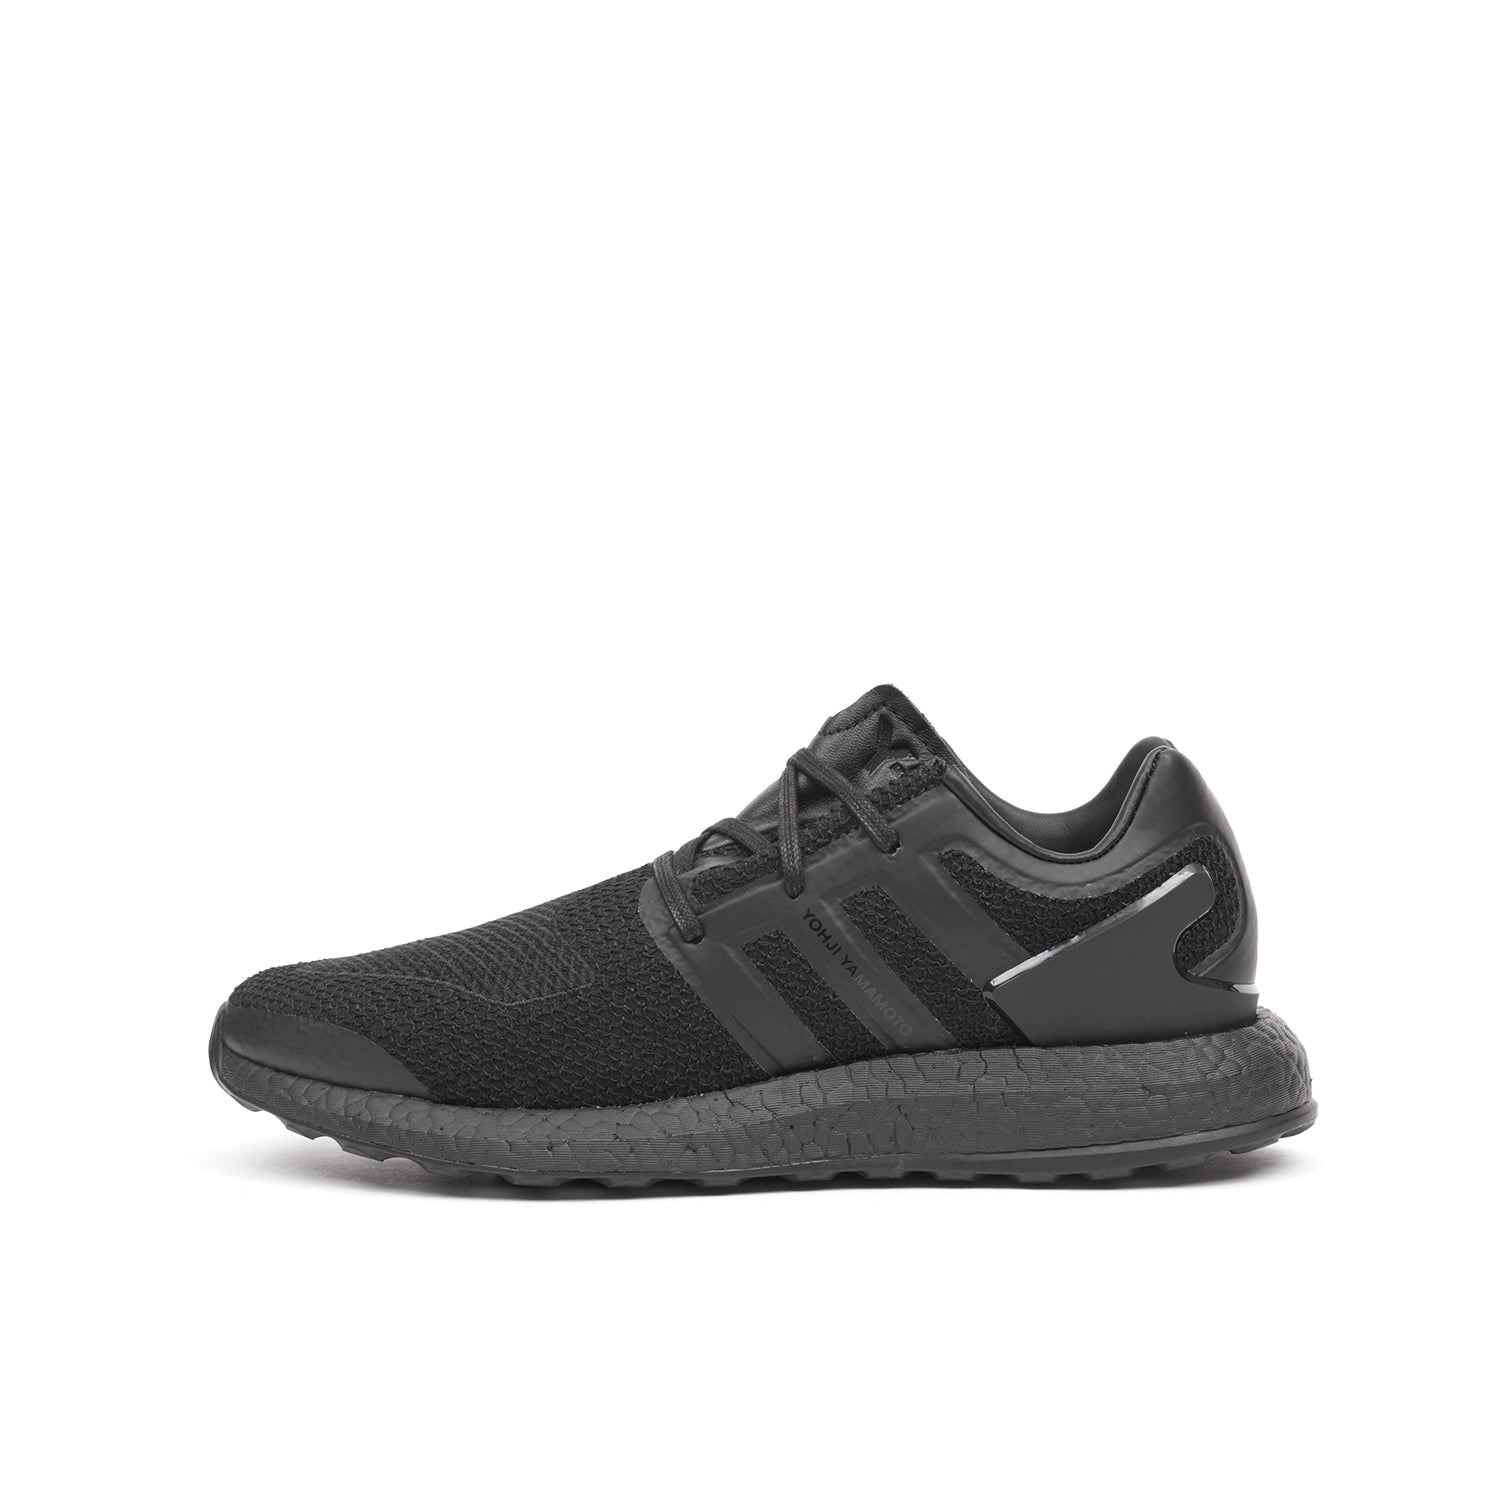 736e808363ff adidas Y-3 Pureboost  Triple Black . Tap to expand